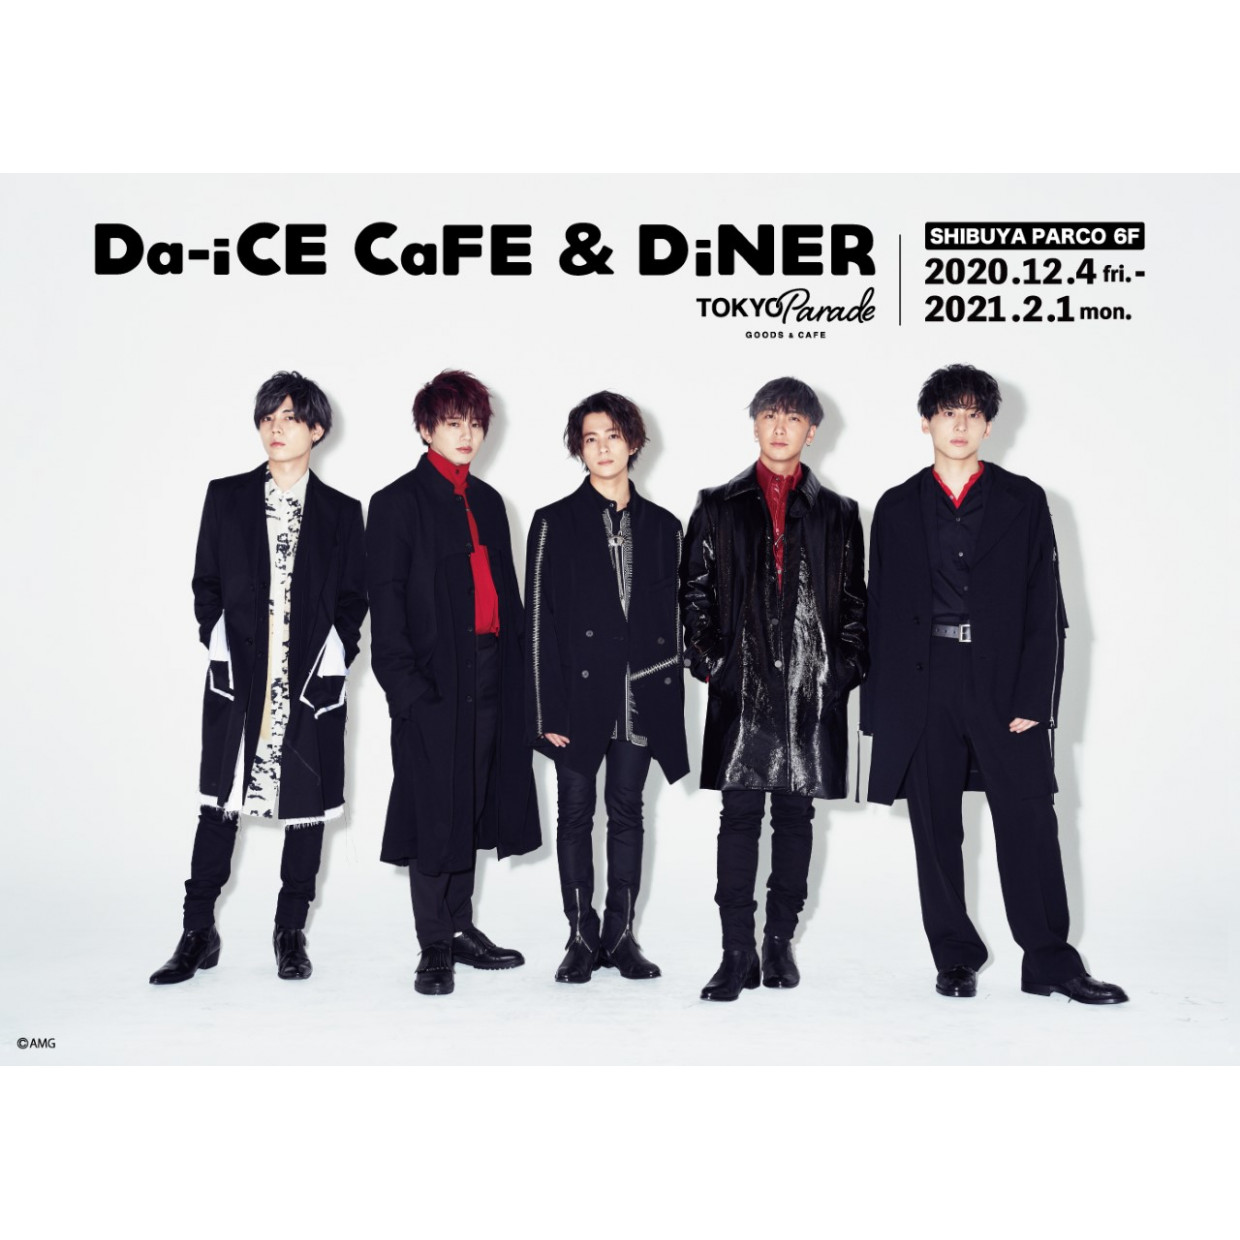 Da-iCE CaFE & DiNER holding!